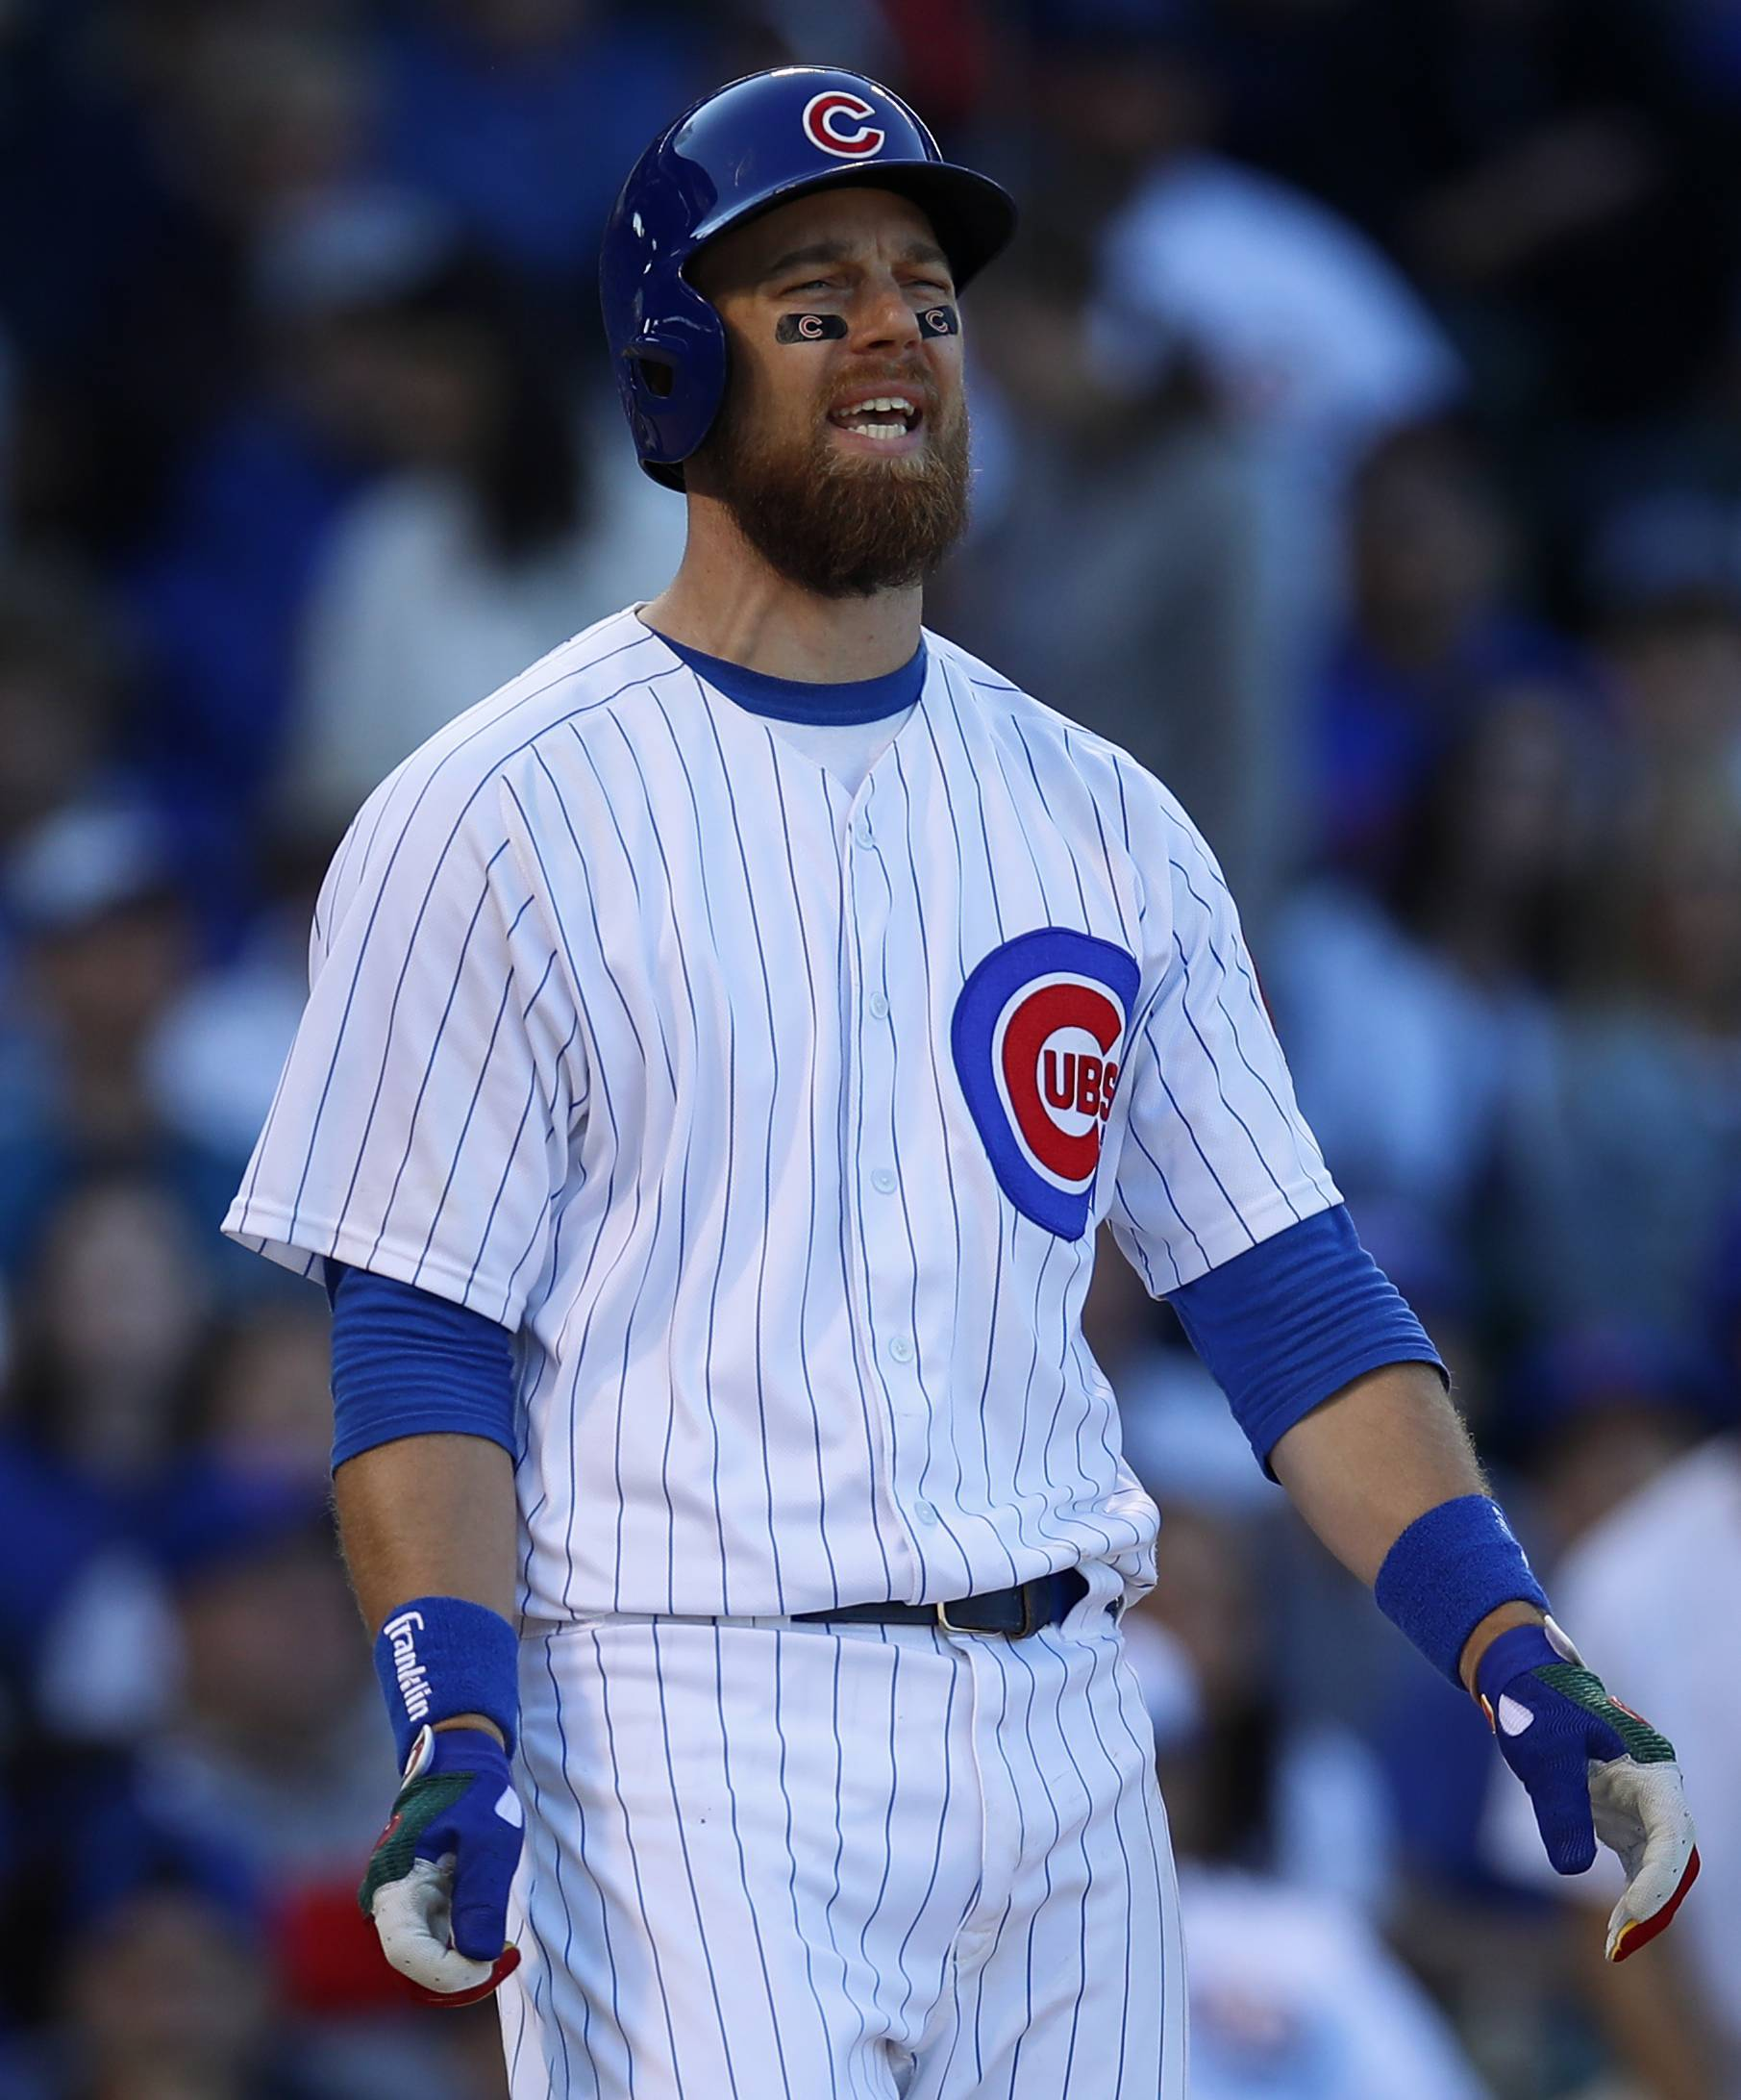 Chicago Cubs' Ben Zobrist reacts after a called strike Saturday during the fourth inning against the Milwaukee Brewers in Chicago.